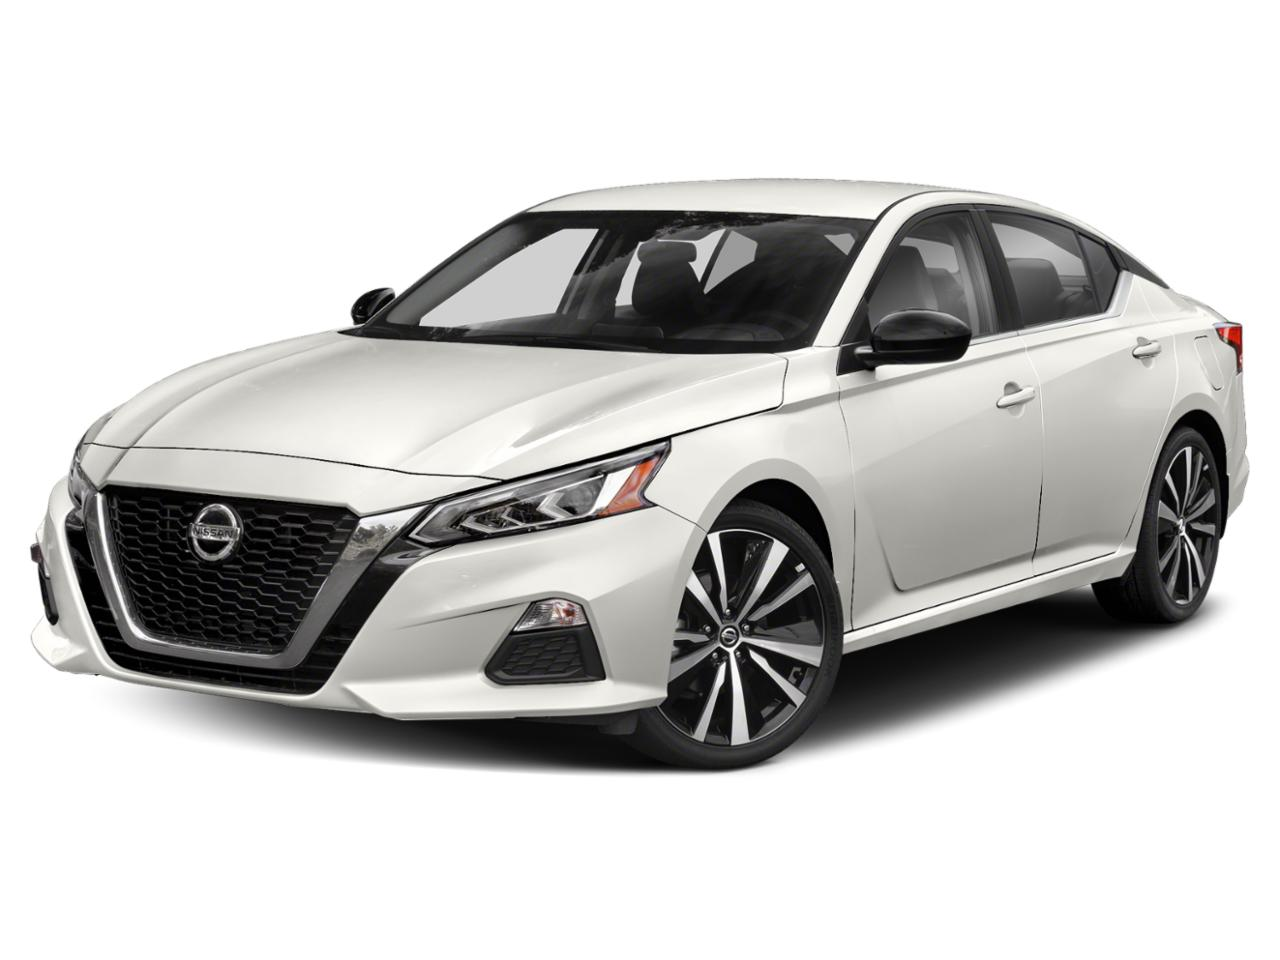 2020 Nissan Altima Vehicle Photo in VINCENNES, IN 47591-5519